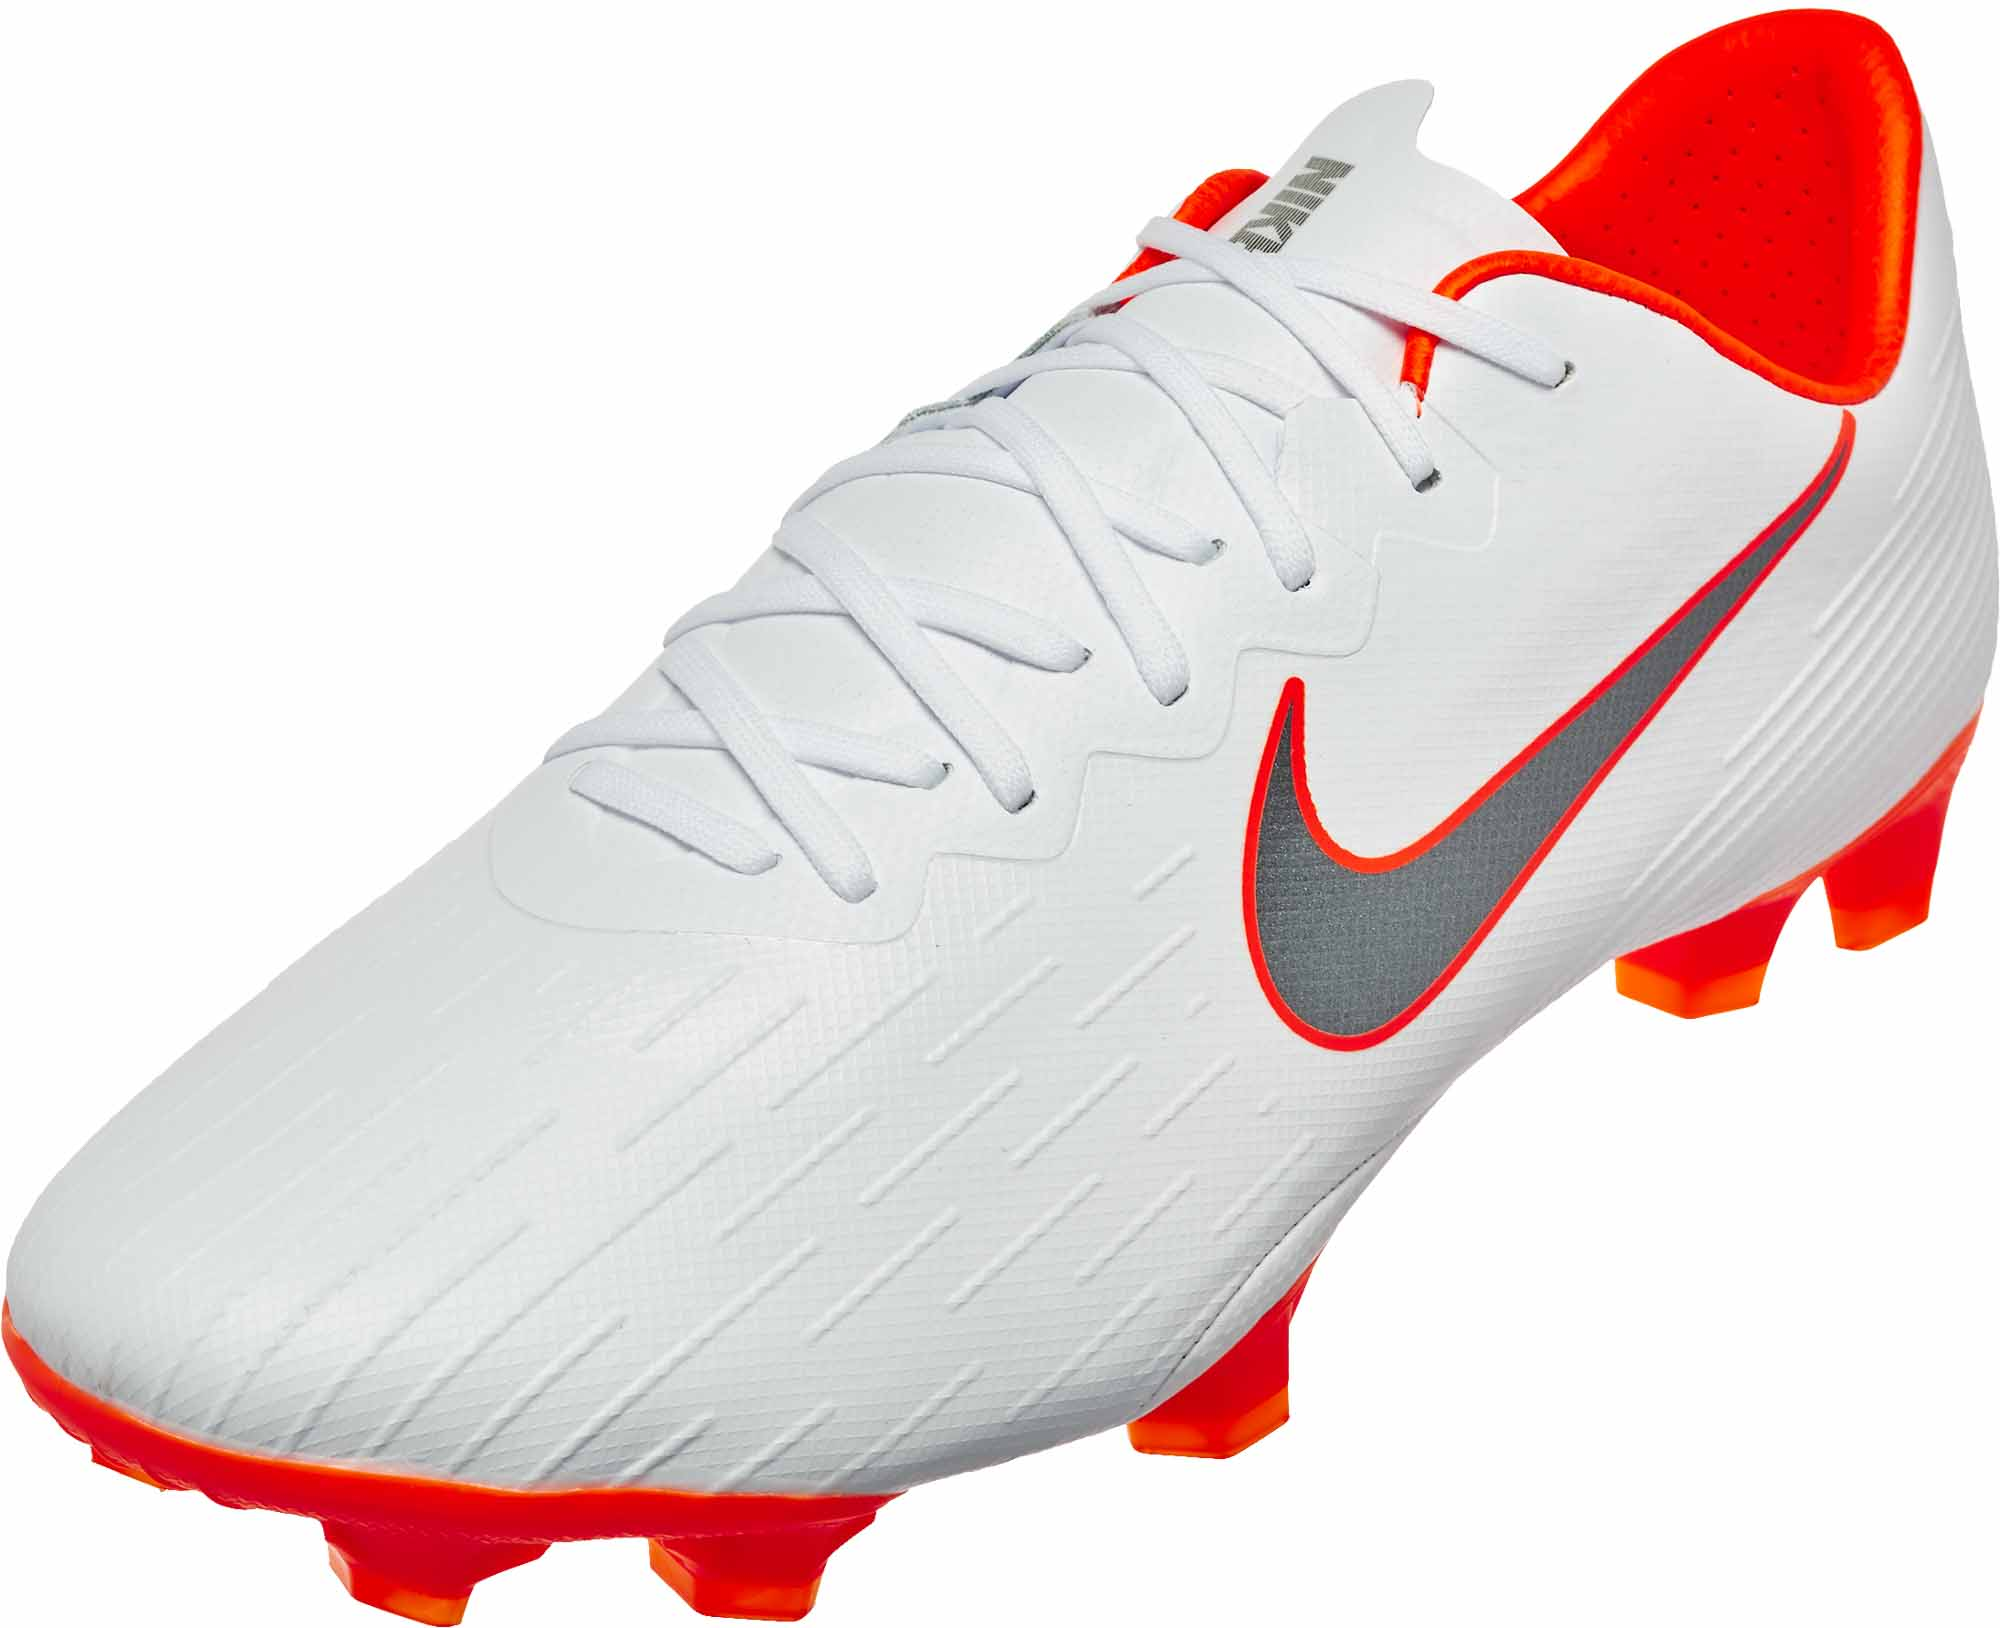 Nike Mercurial Vapor 12 Pro FG - White Metallic Cool Grey Total Orange 93a467329